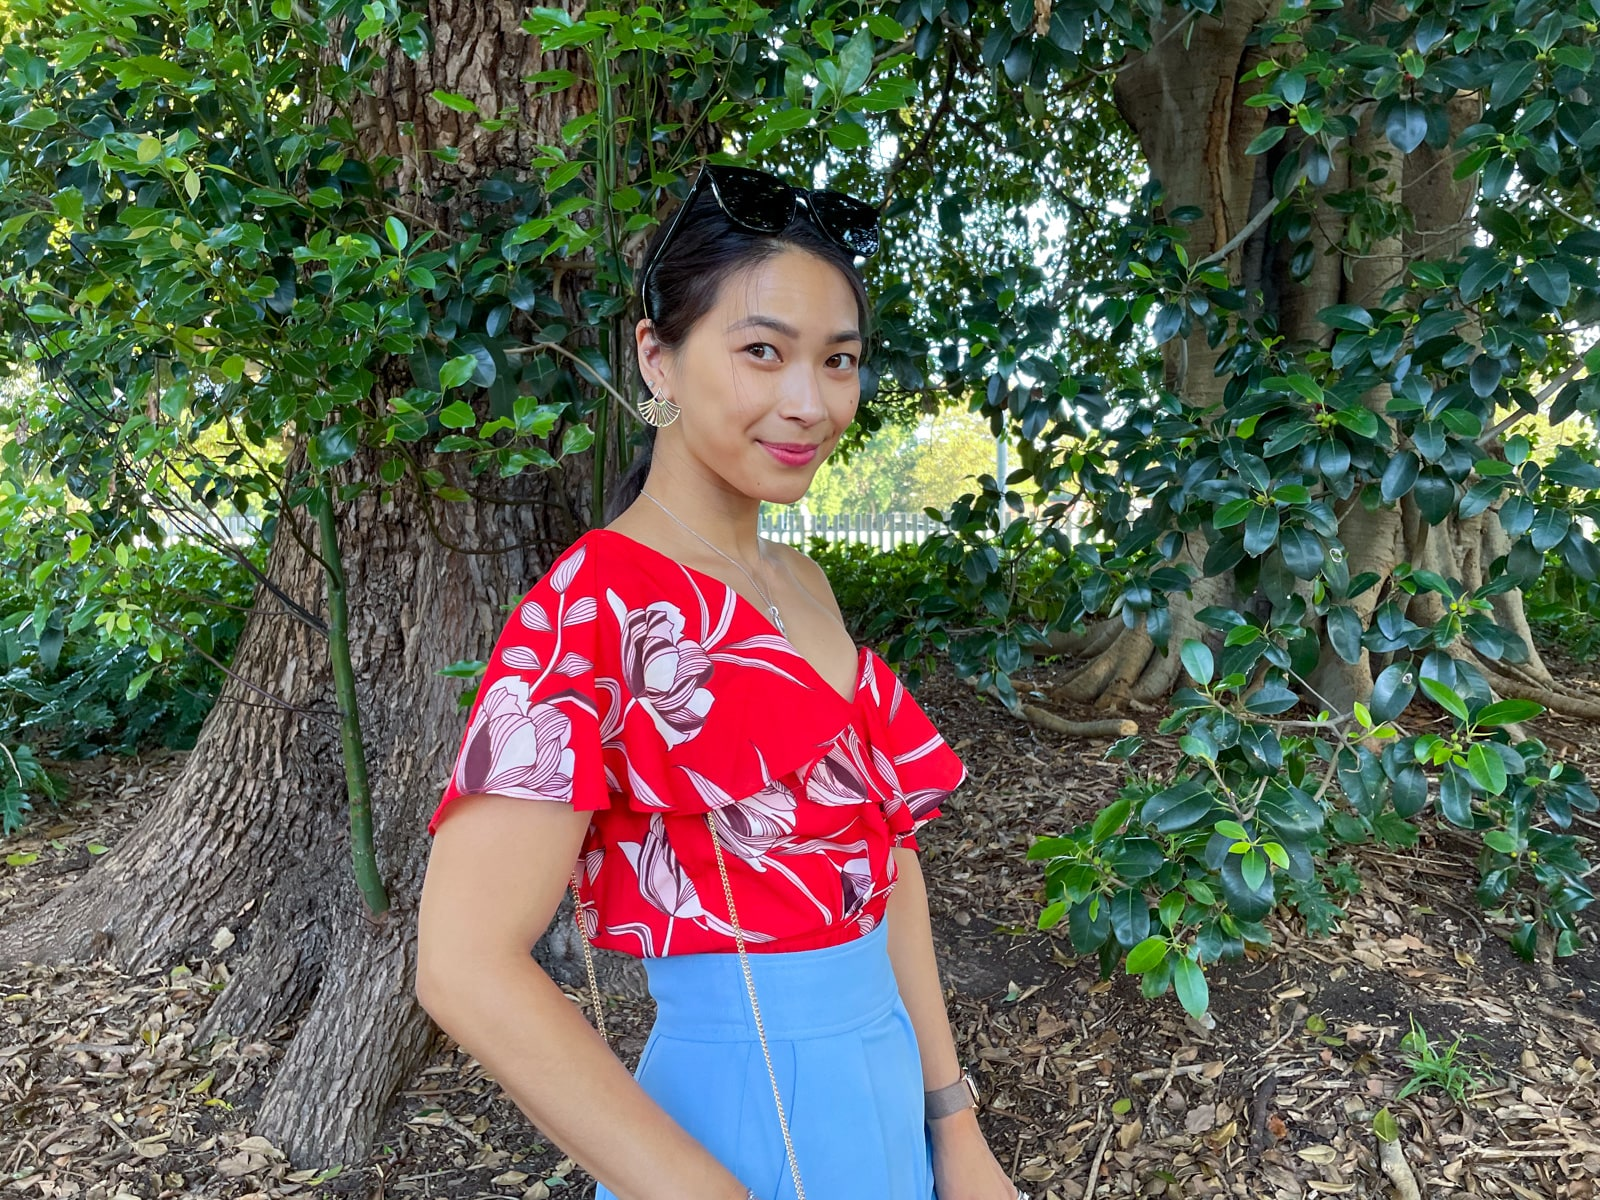 An Asian woman wearing a red top with a floral print, and blue pants, with her hair tied back in a low ponytail. She has black sunglasses on top of her head and is smiling with her chin pointed downwards as she looks up. She is standing in front of a tree.